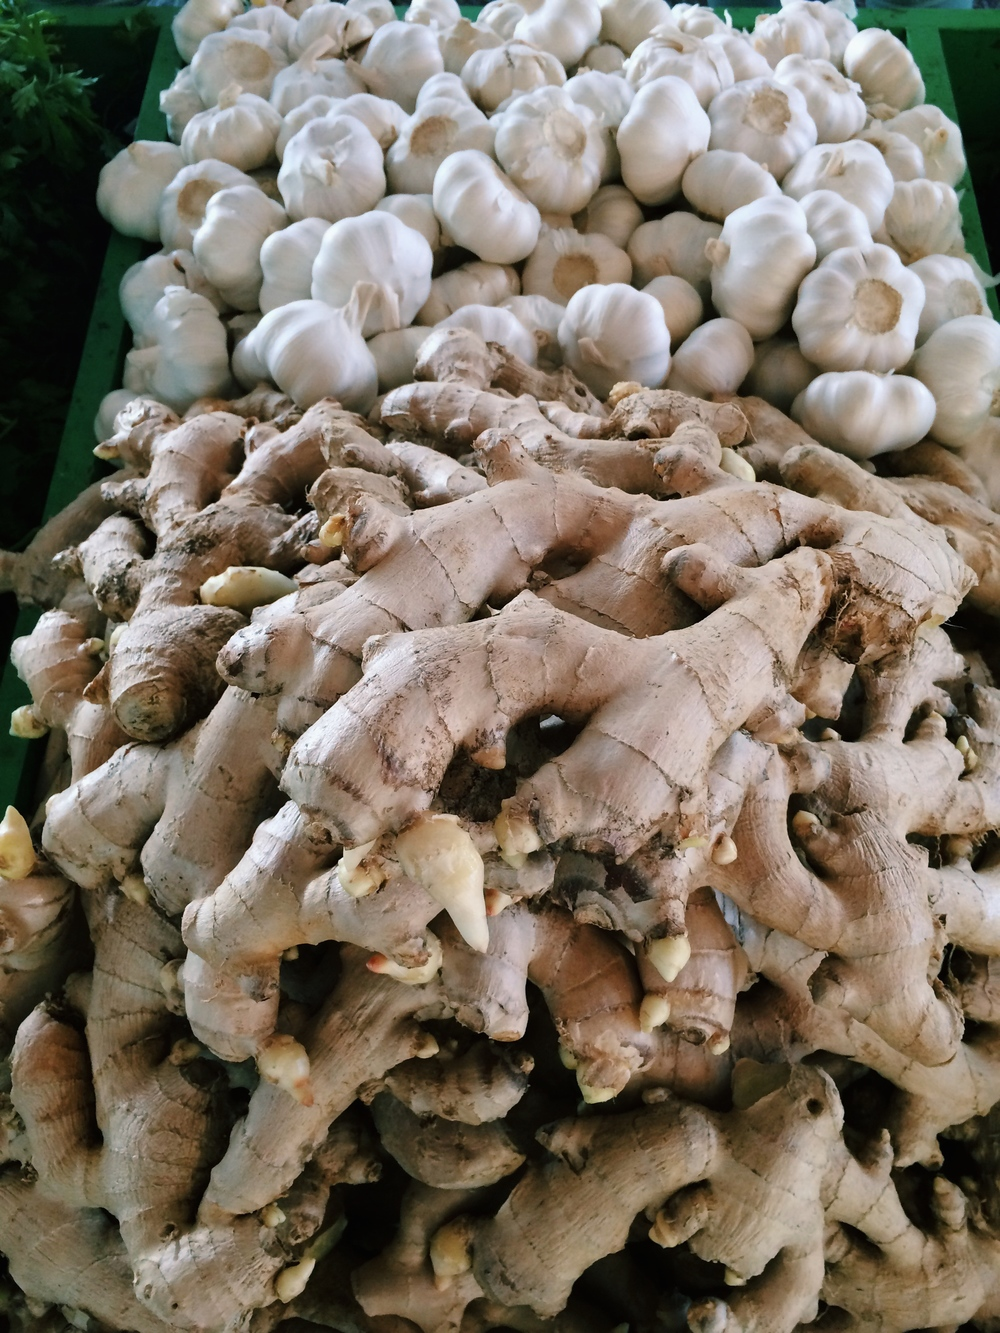 Lauren-Schwaige-Blog-Farmers-Market-Ginger-Garlic.jpg